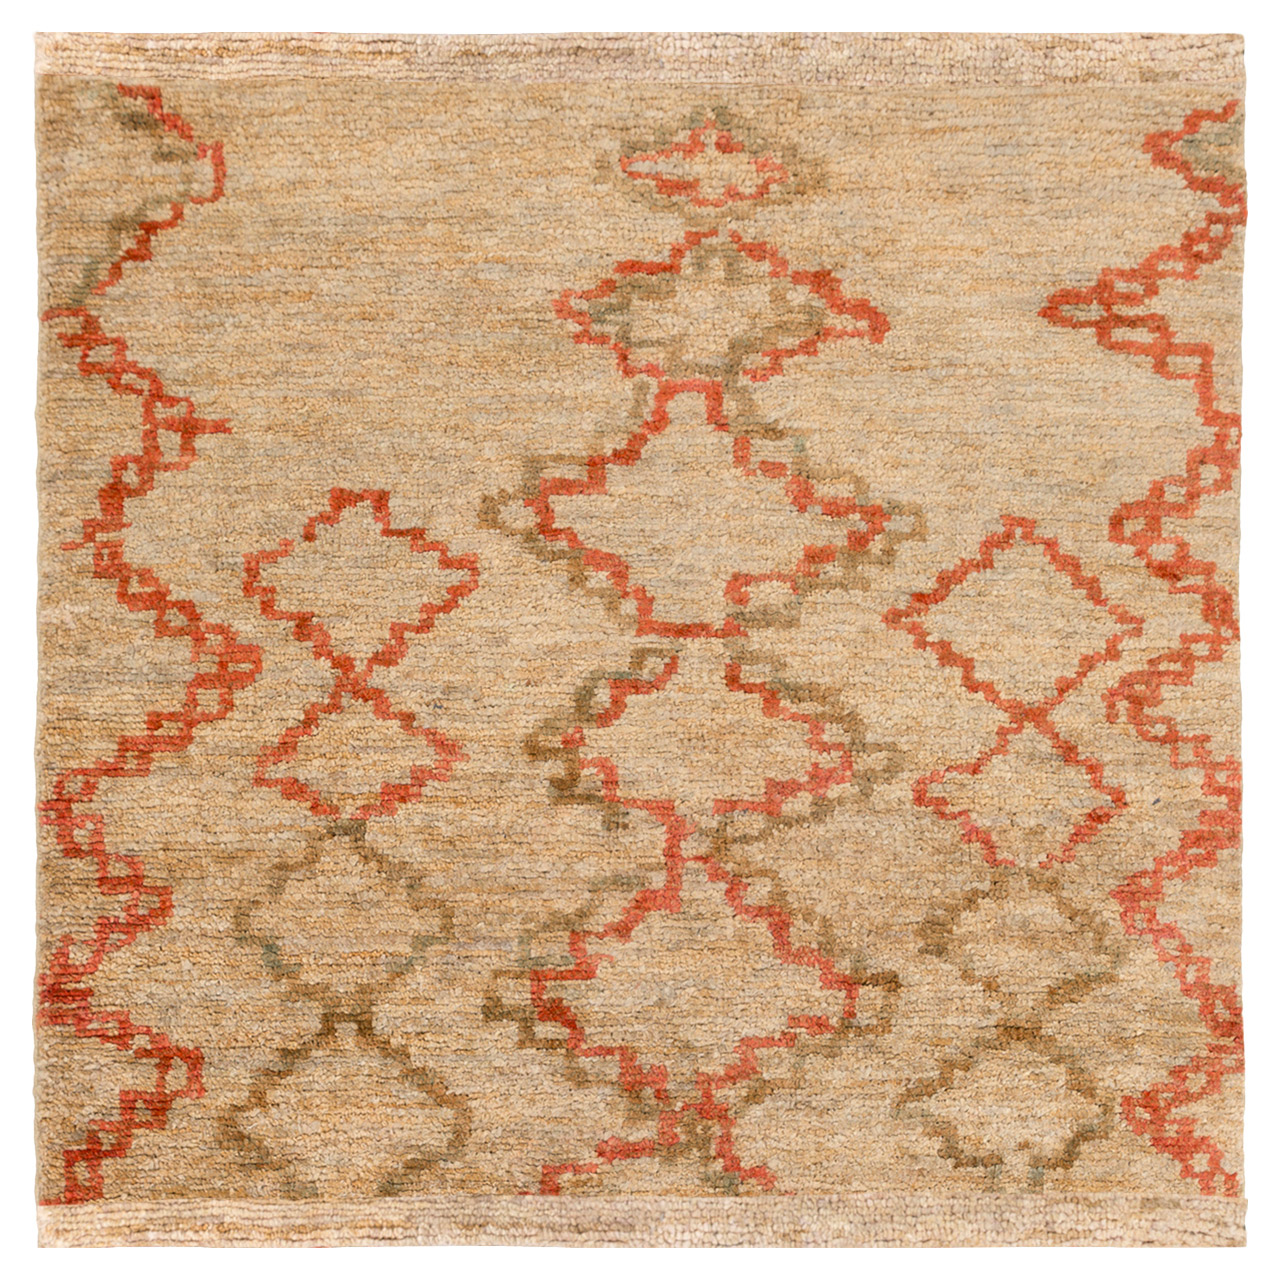 Nalia Bazaar Burnt Orange Beige Jute Rug - Sample